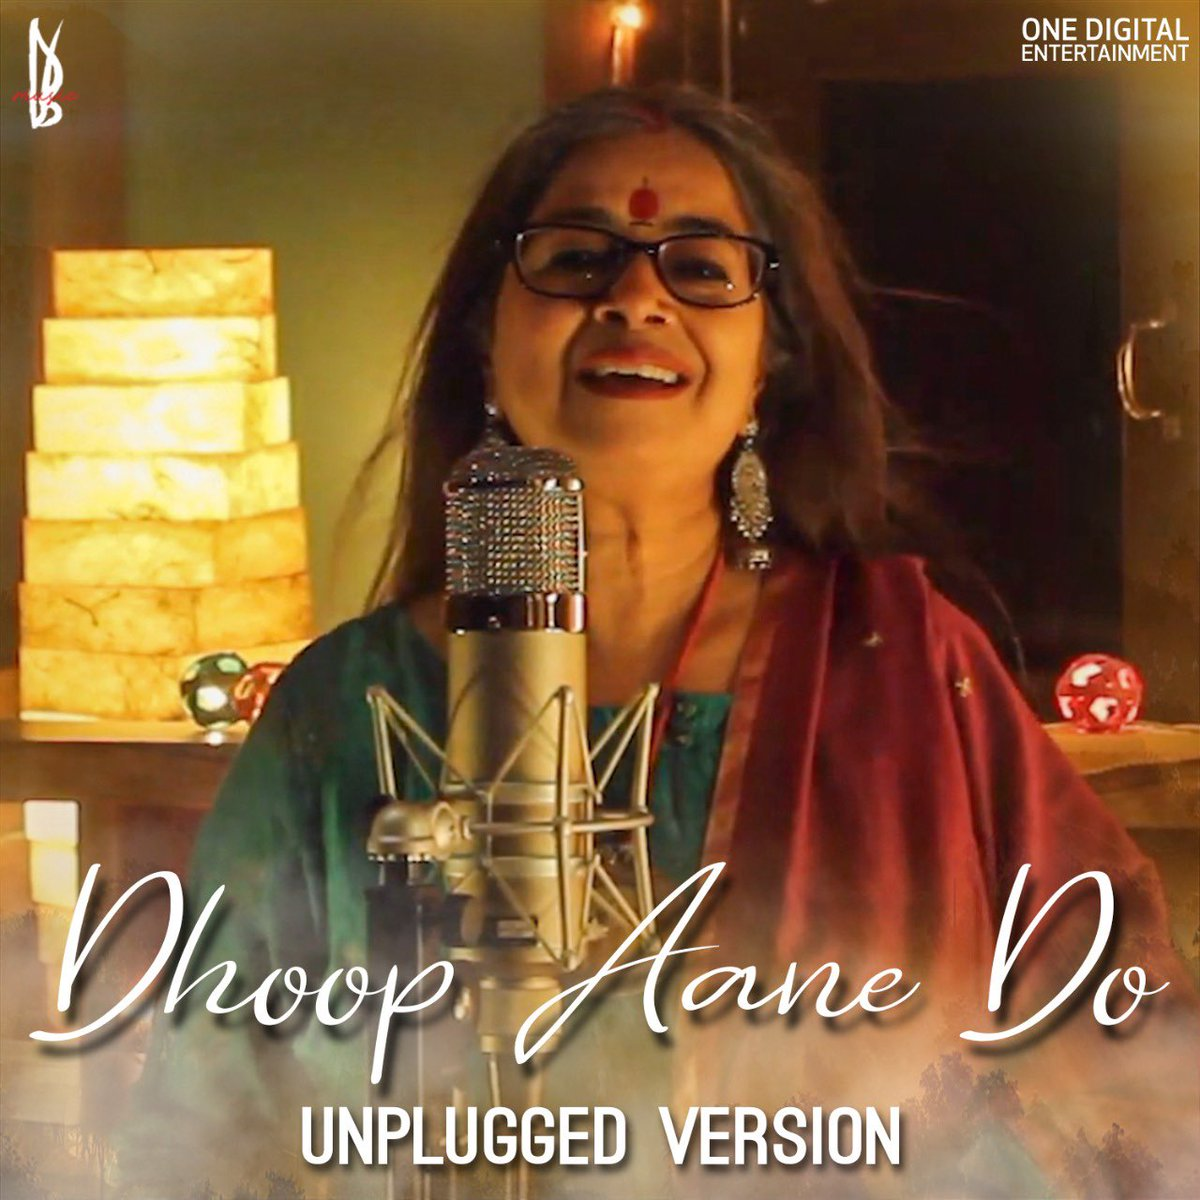 Thank you for showering so much love on our song Dhoop Aane Do. Check out the unplugged version now! https://t.co/KM57QuWKX3…  @VishalBhardwaj @aasmaanbhardwaj @tarsame @OneDigitalEnt @VBMusicLabel https://t.co/N4YU7K2GpT